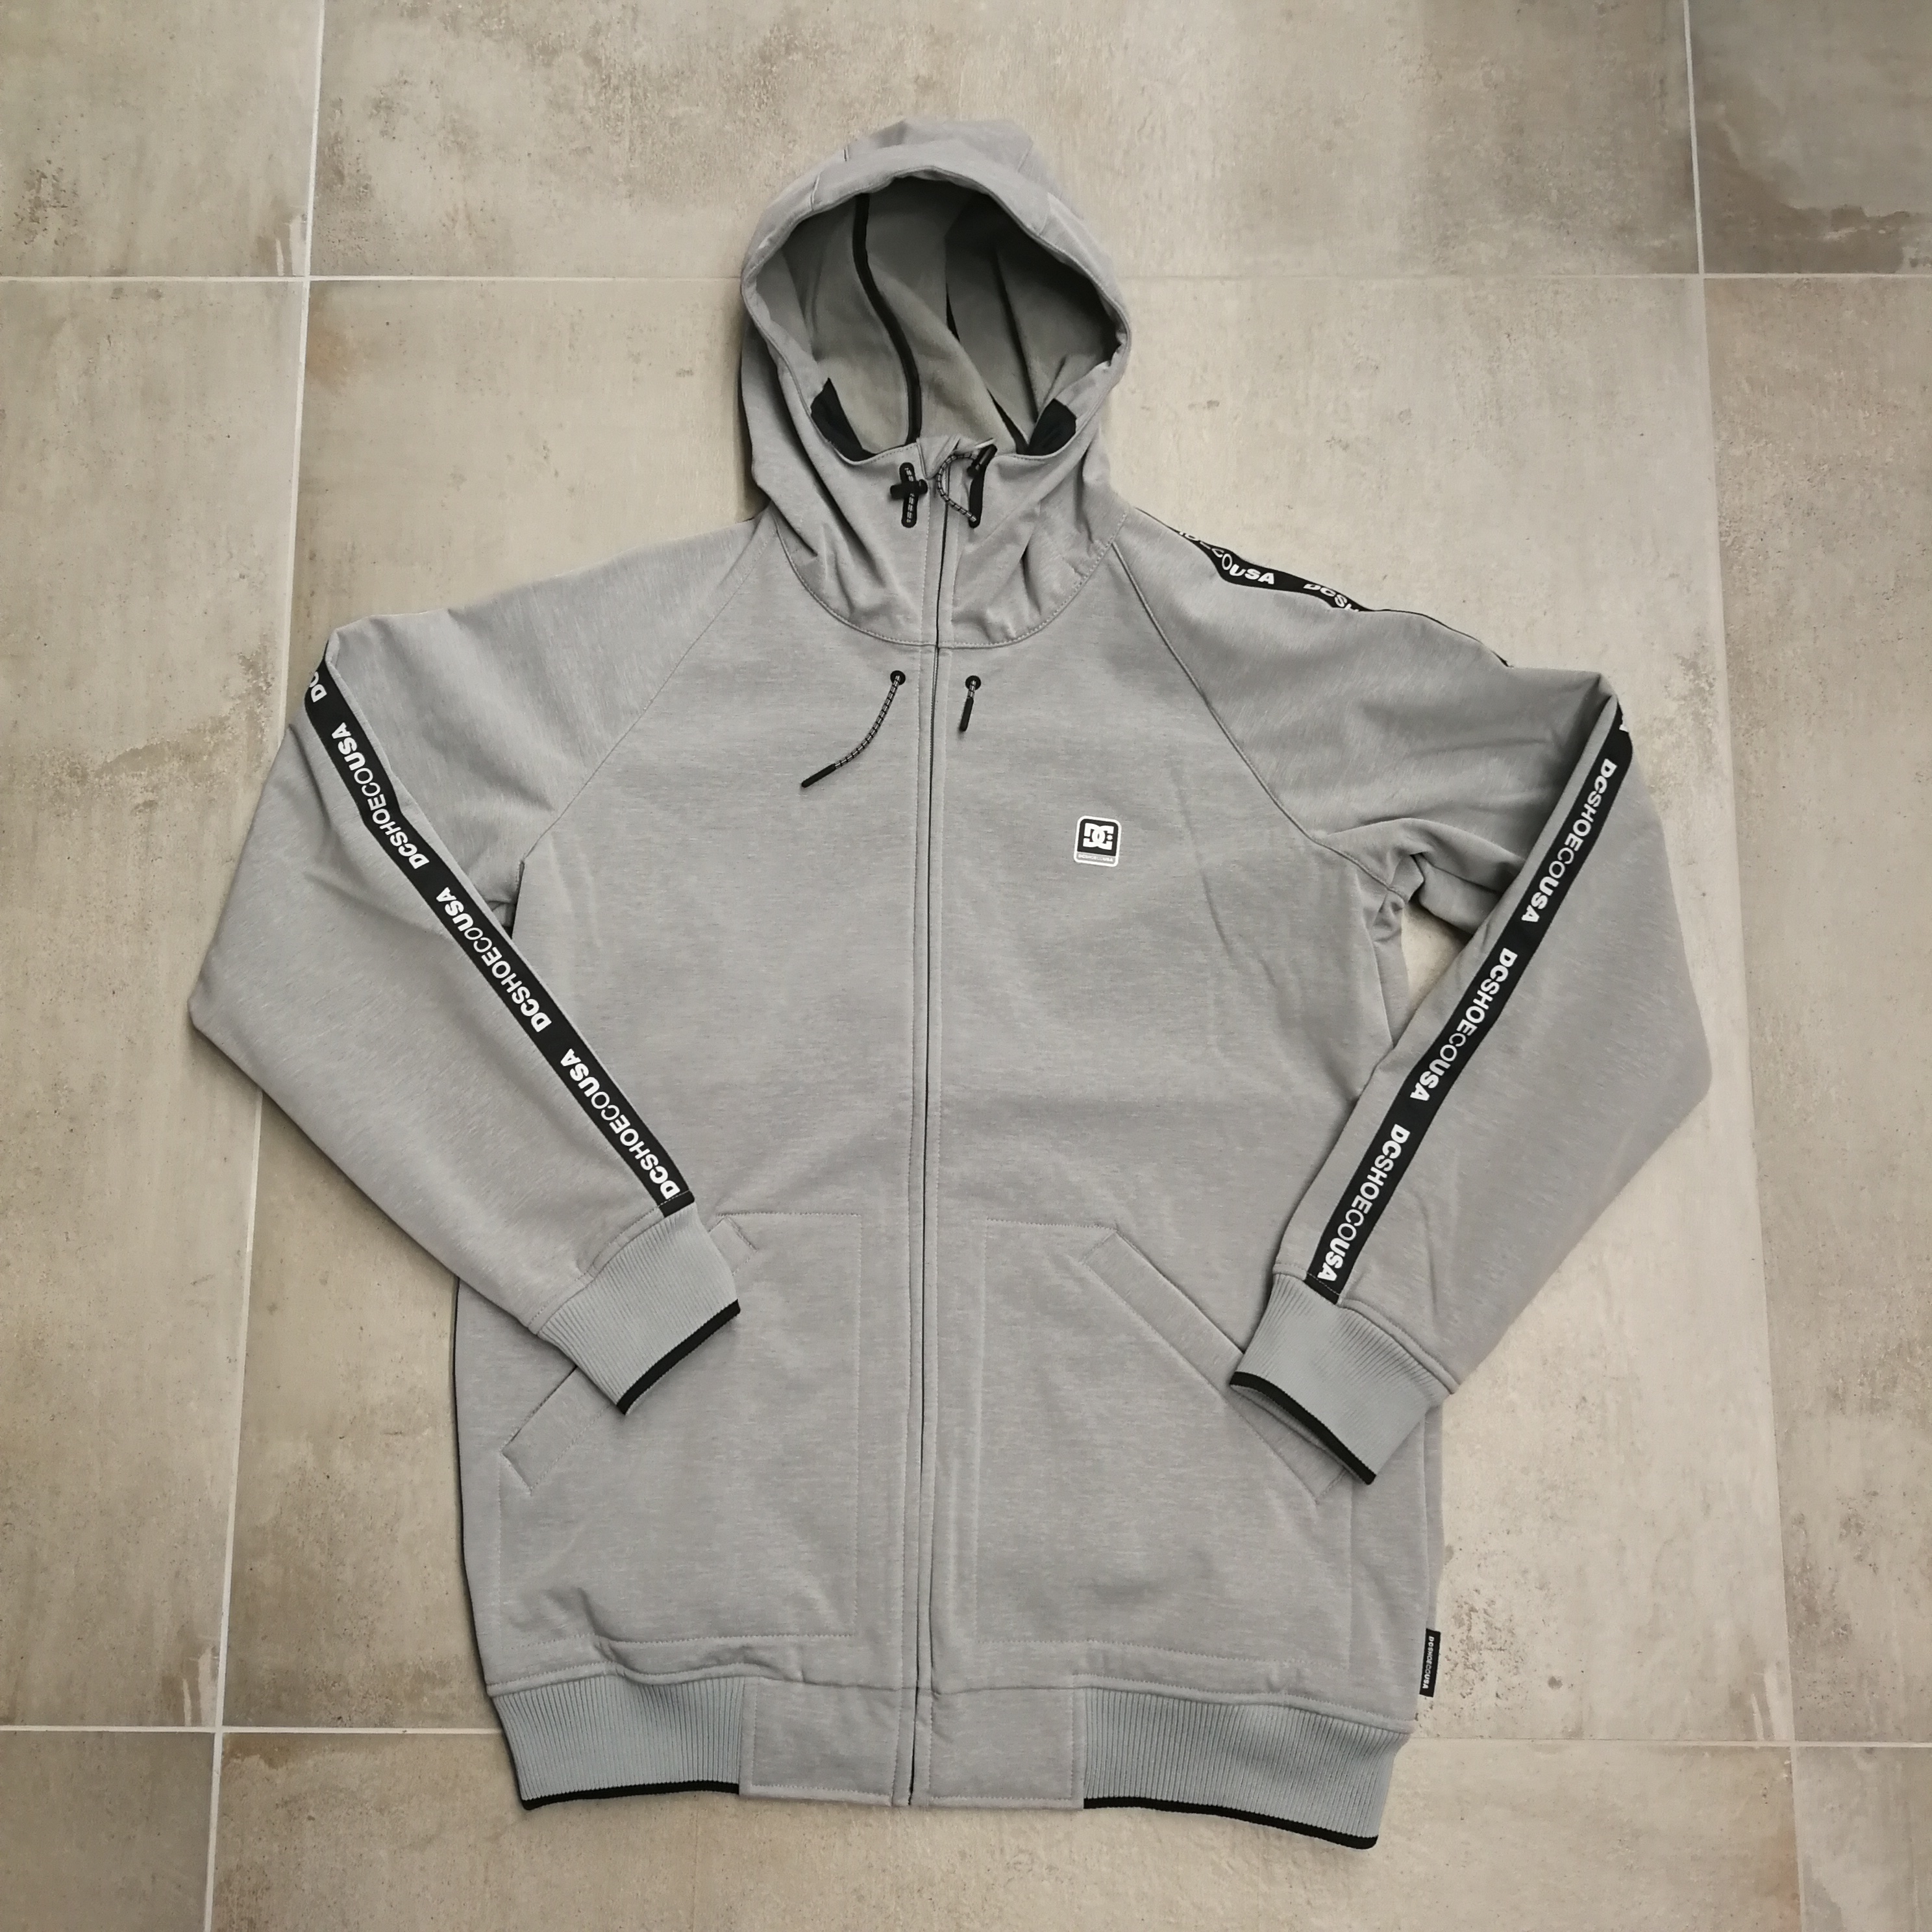 DC SPECTRUM JKT neutral grey